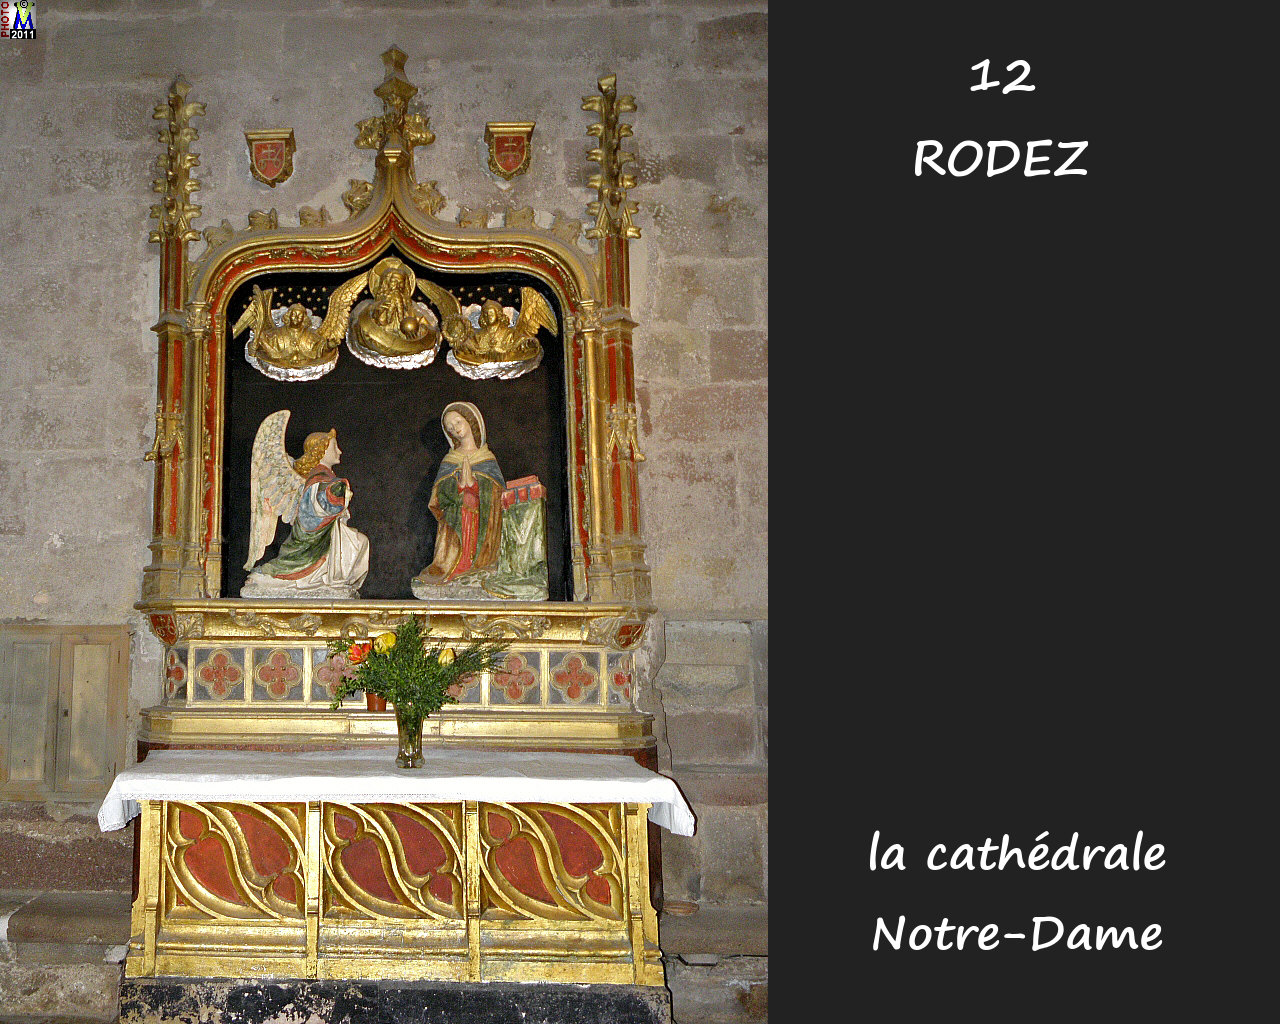 12RODEZ_cathedrale_224.jpg